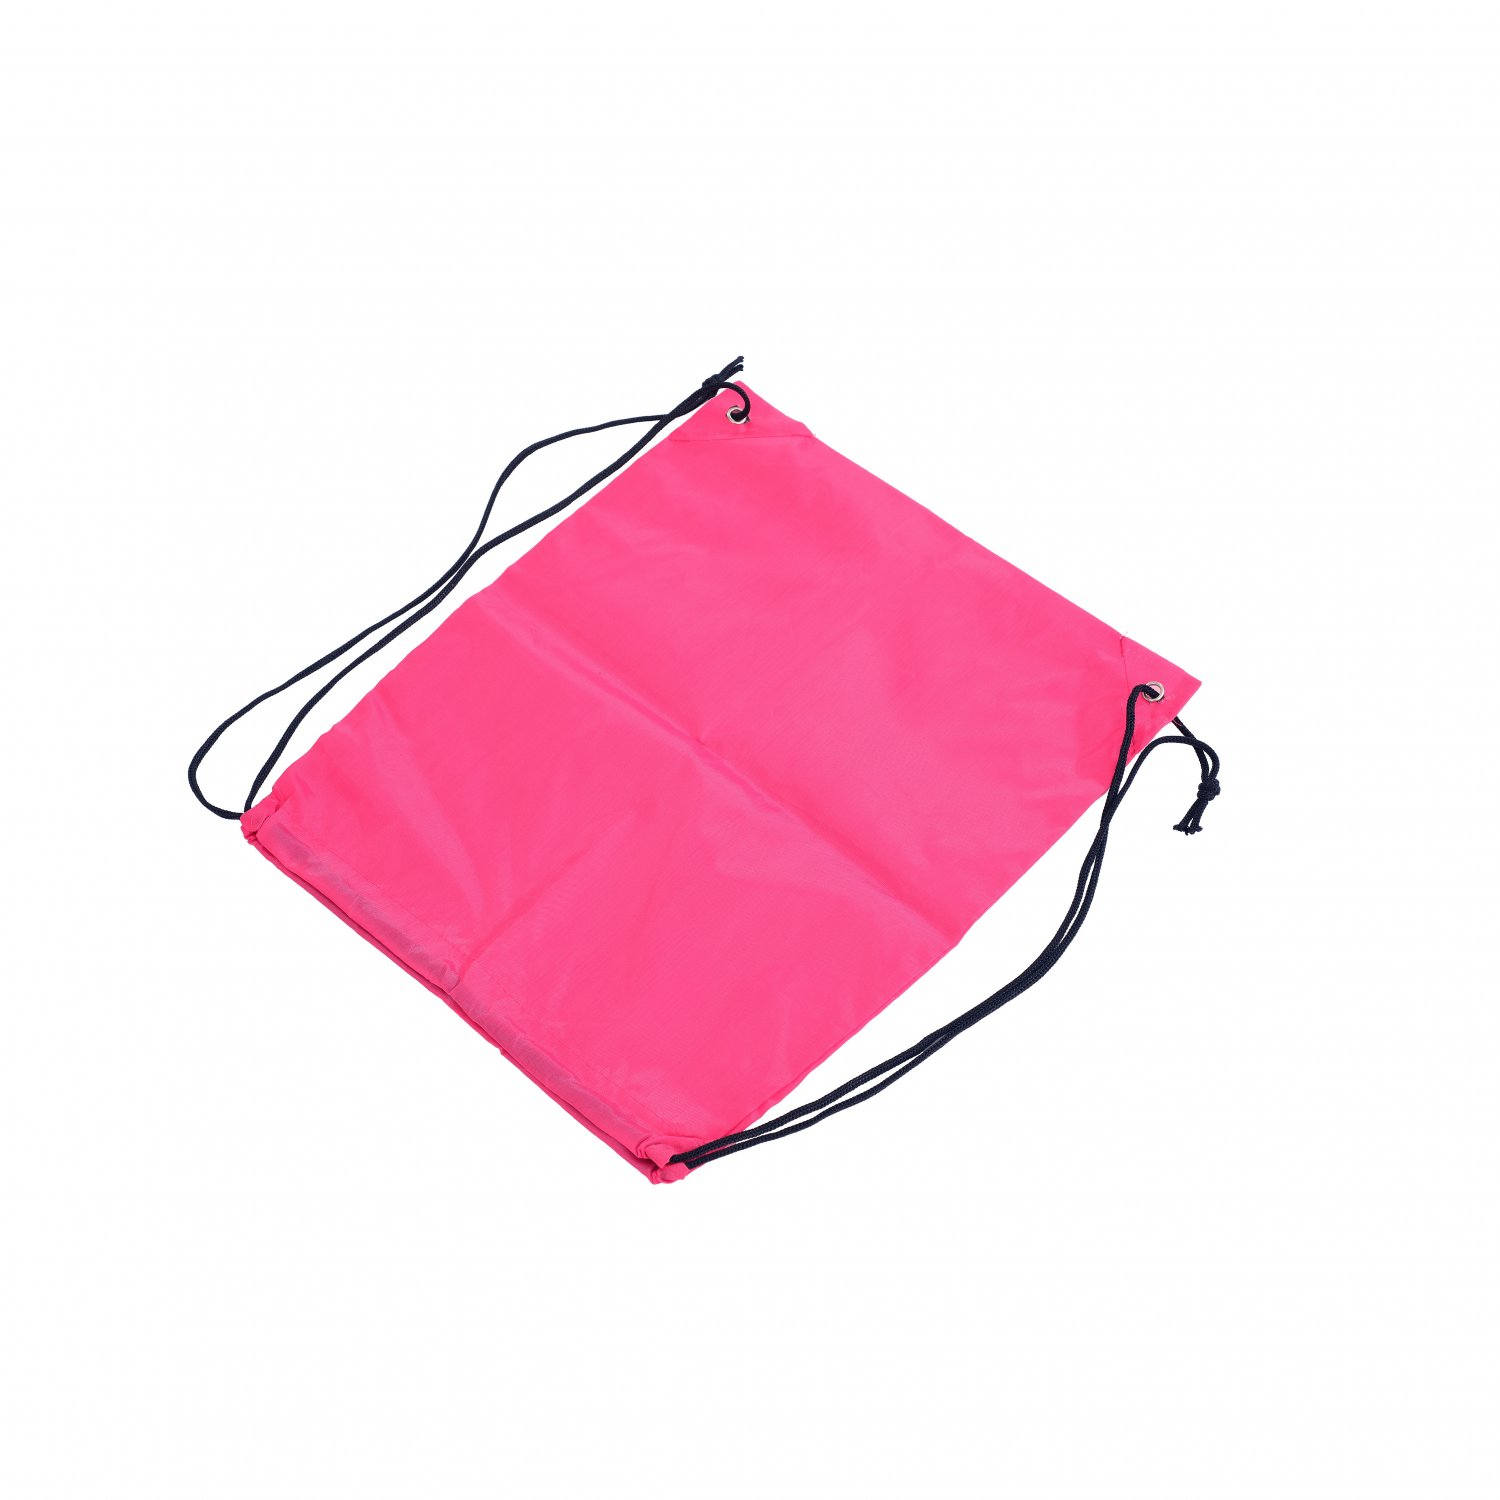 Oxford Cloth Sports PE Pink Laundry Drawstring Bag